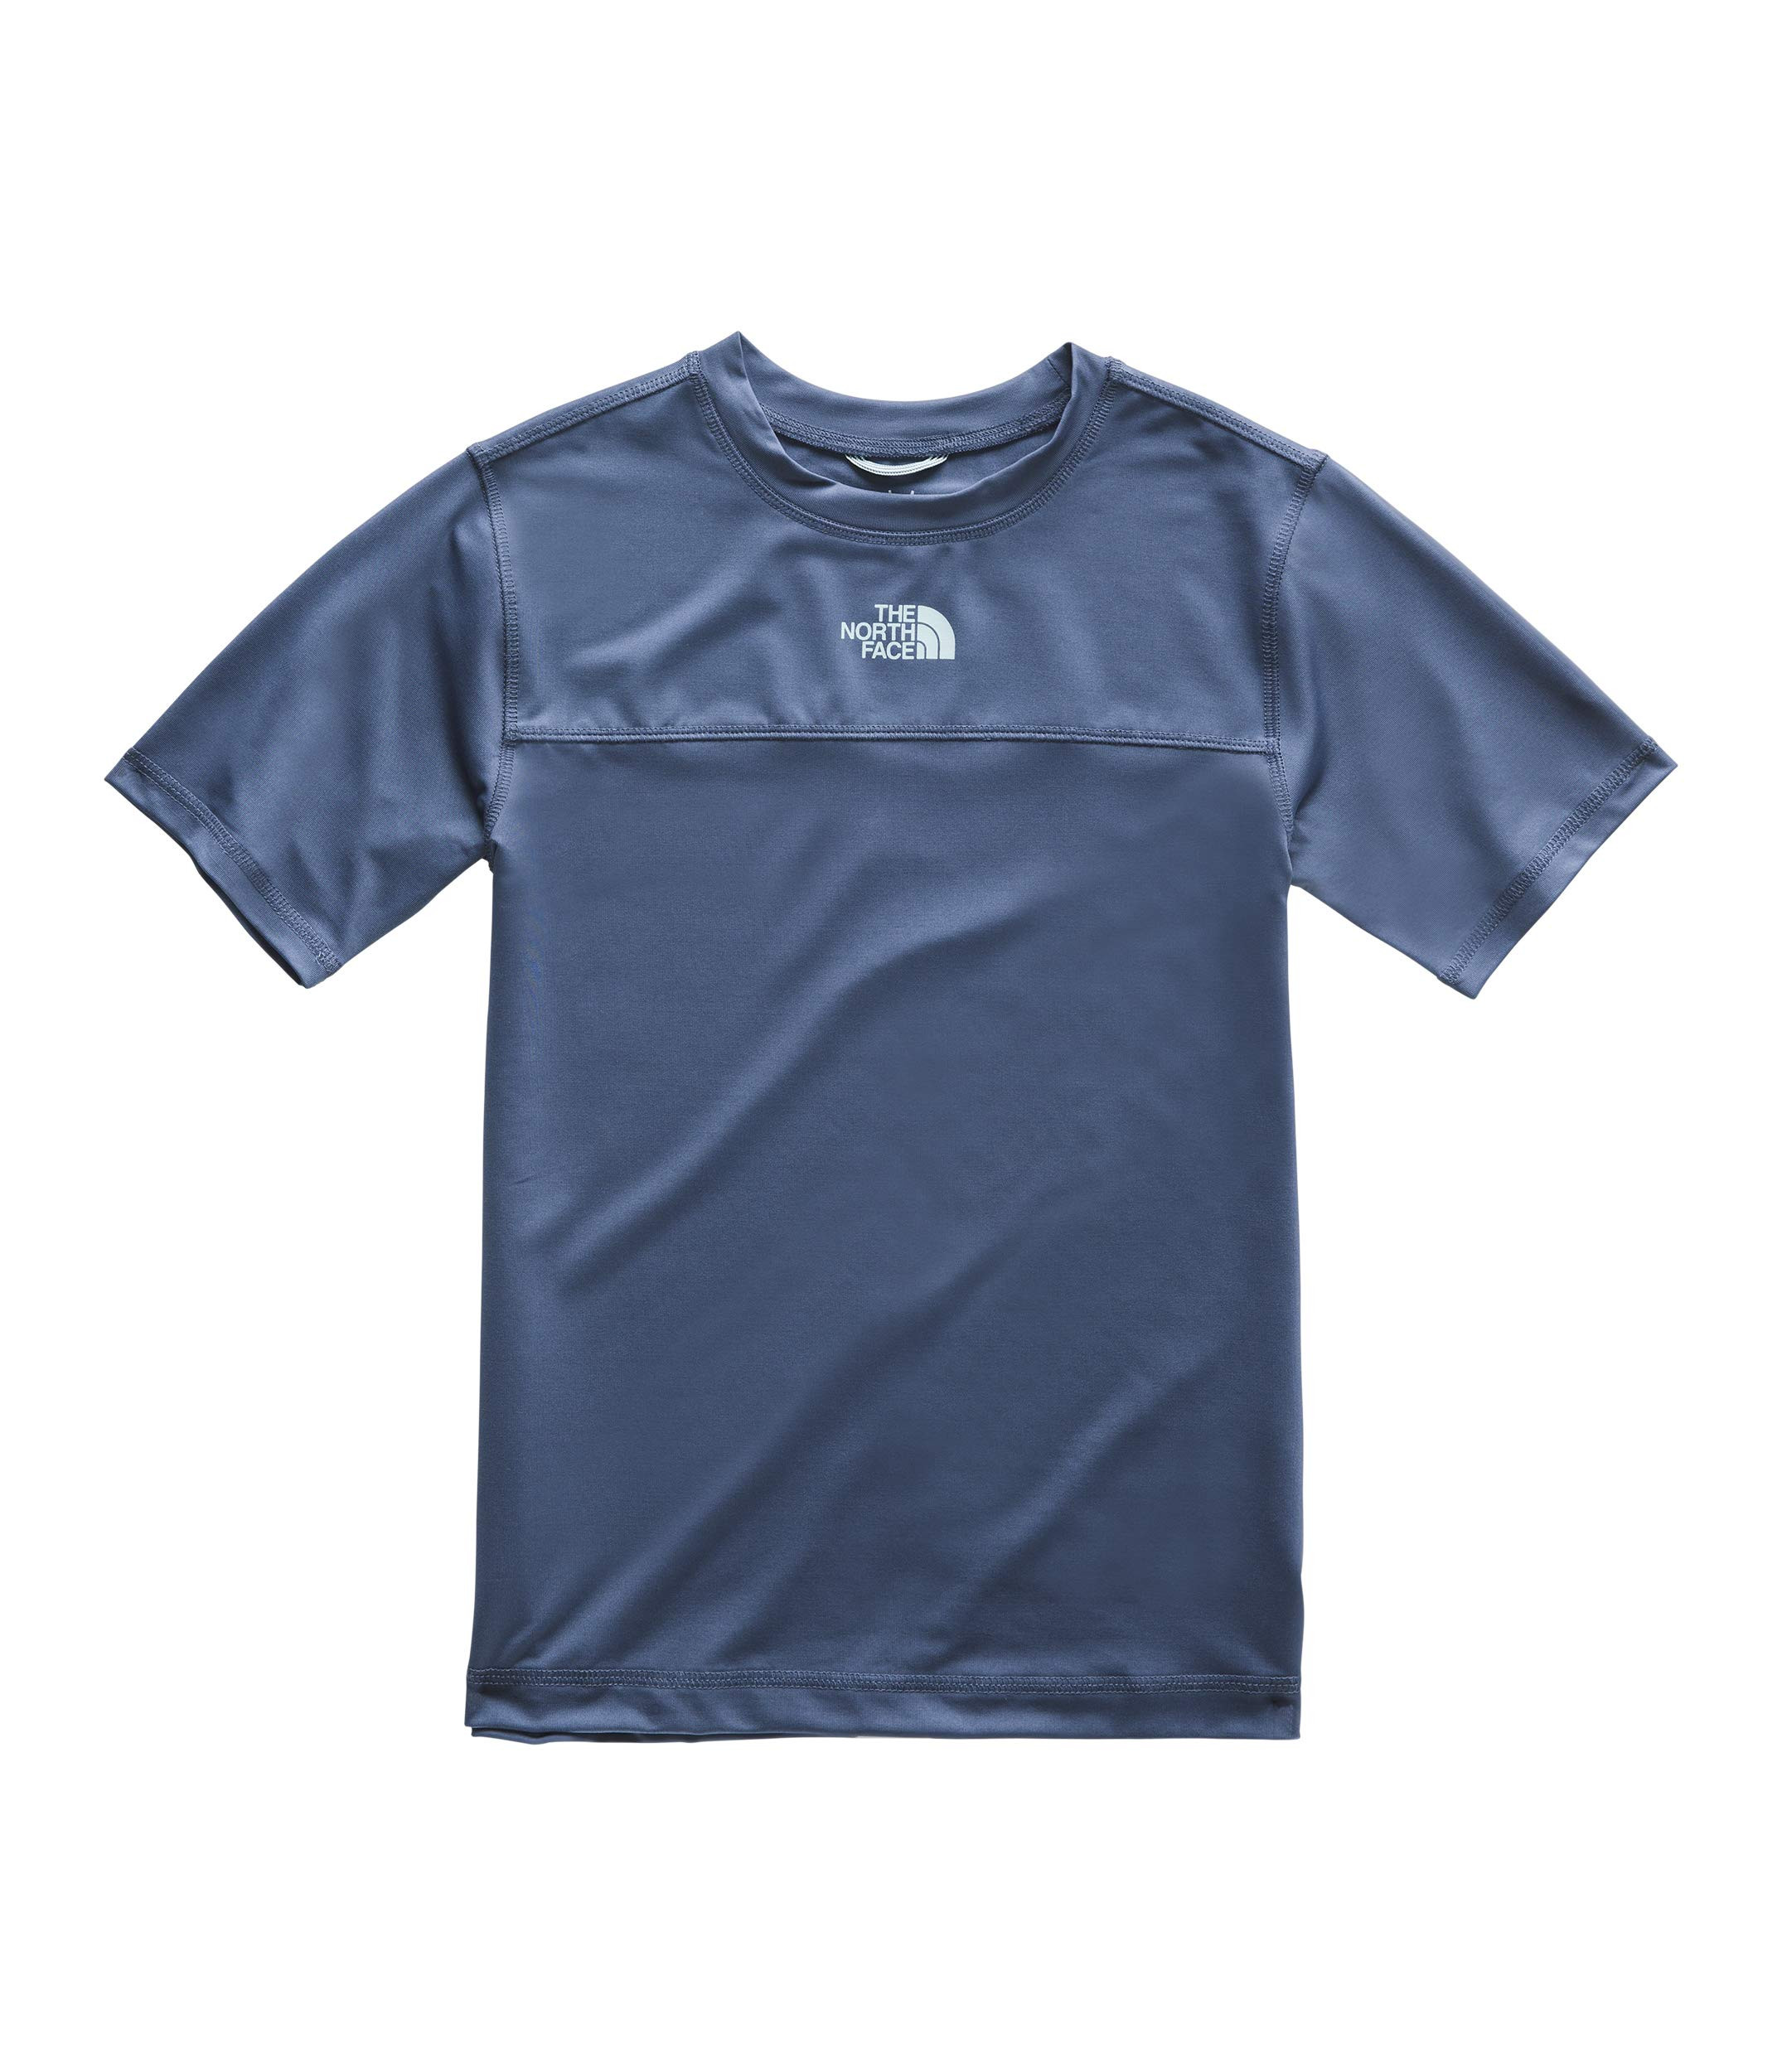 The North Face Kids Boy's Short Sleeve Amphibious Tee (Little Kids/Big Kids) Shady Blue Large